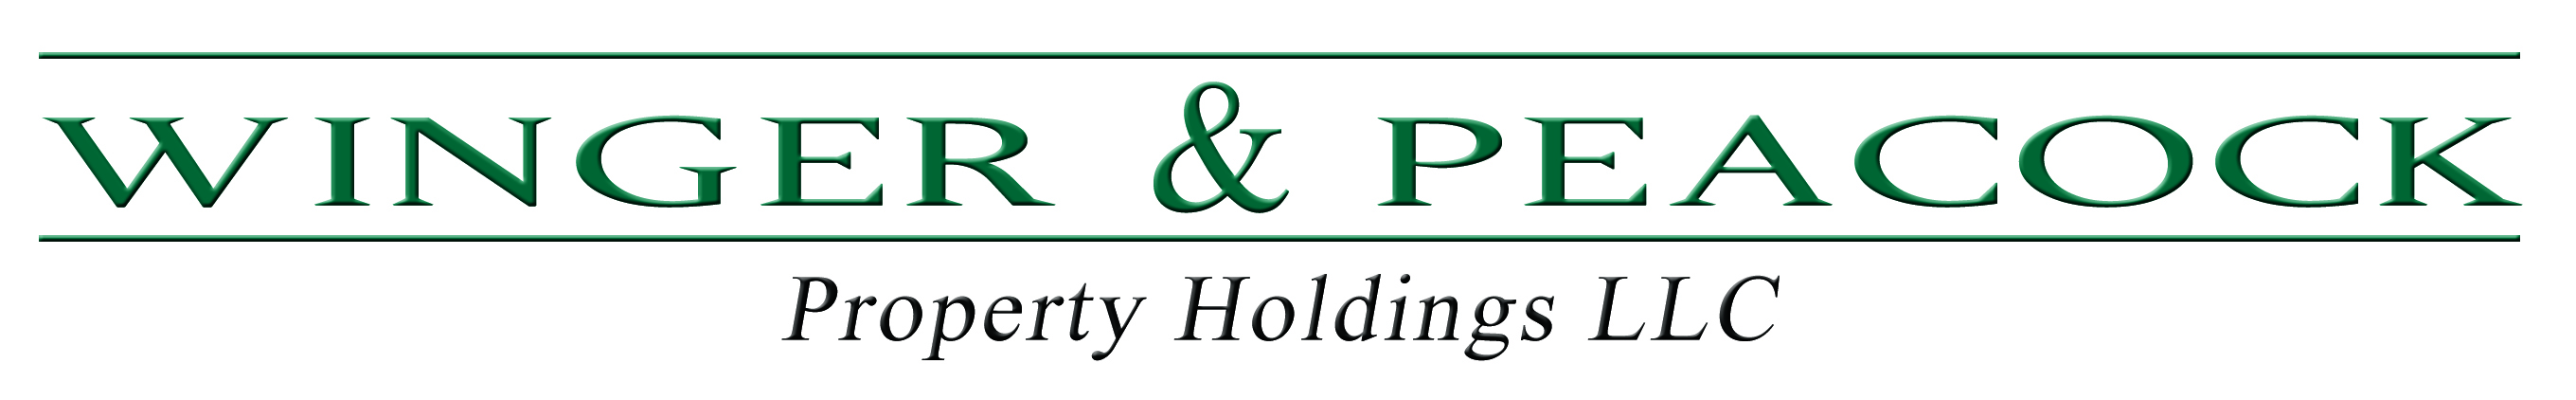 WP Property Holdings logo